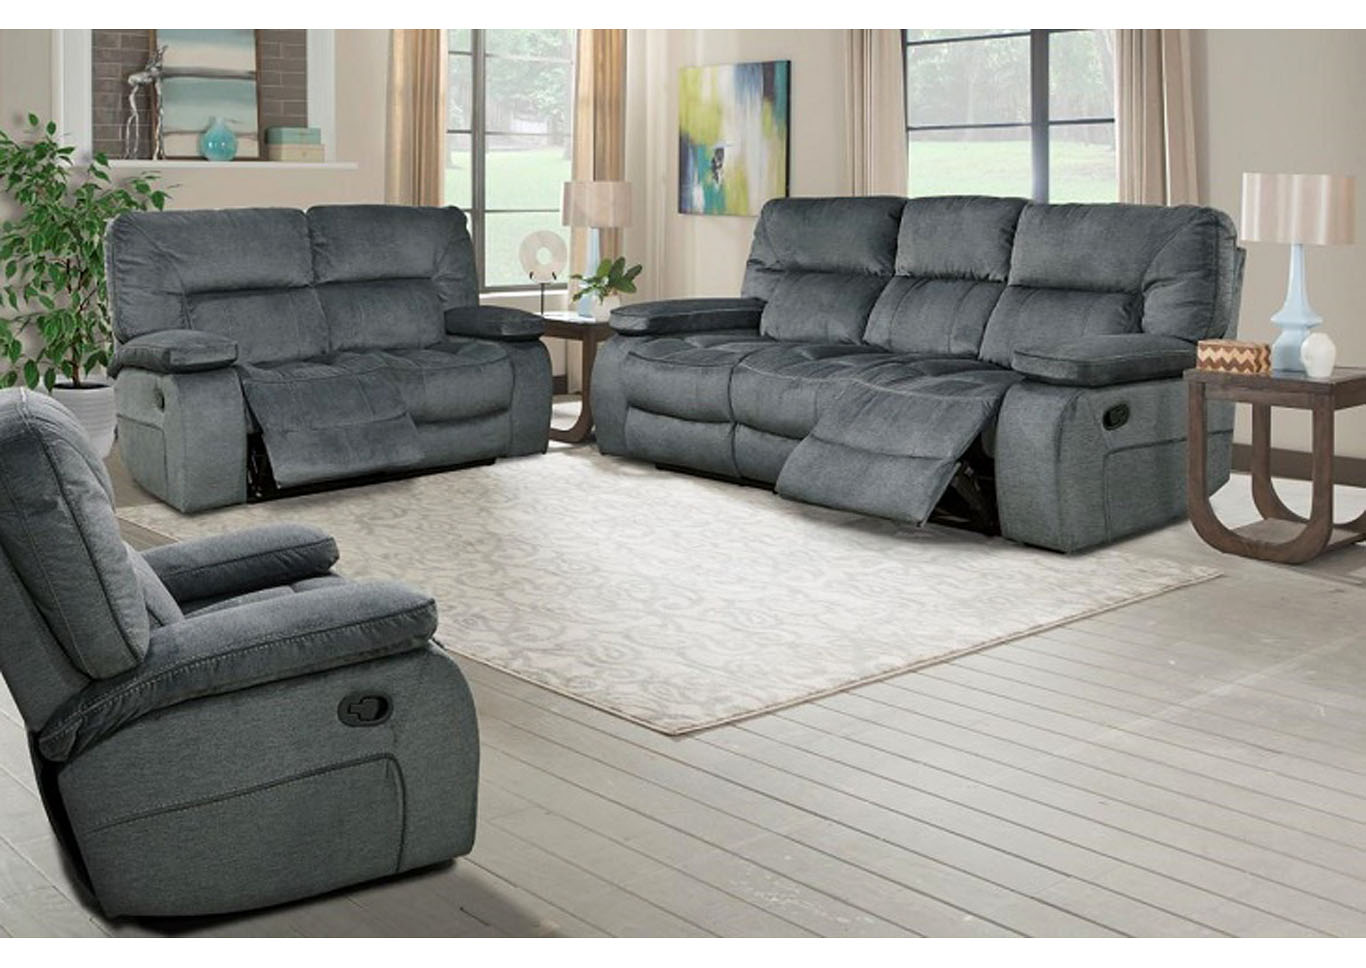 Chapman Triple Reclining Sofa Polo Blue,Instore